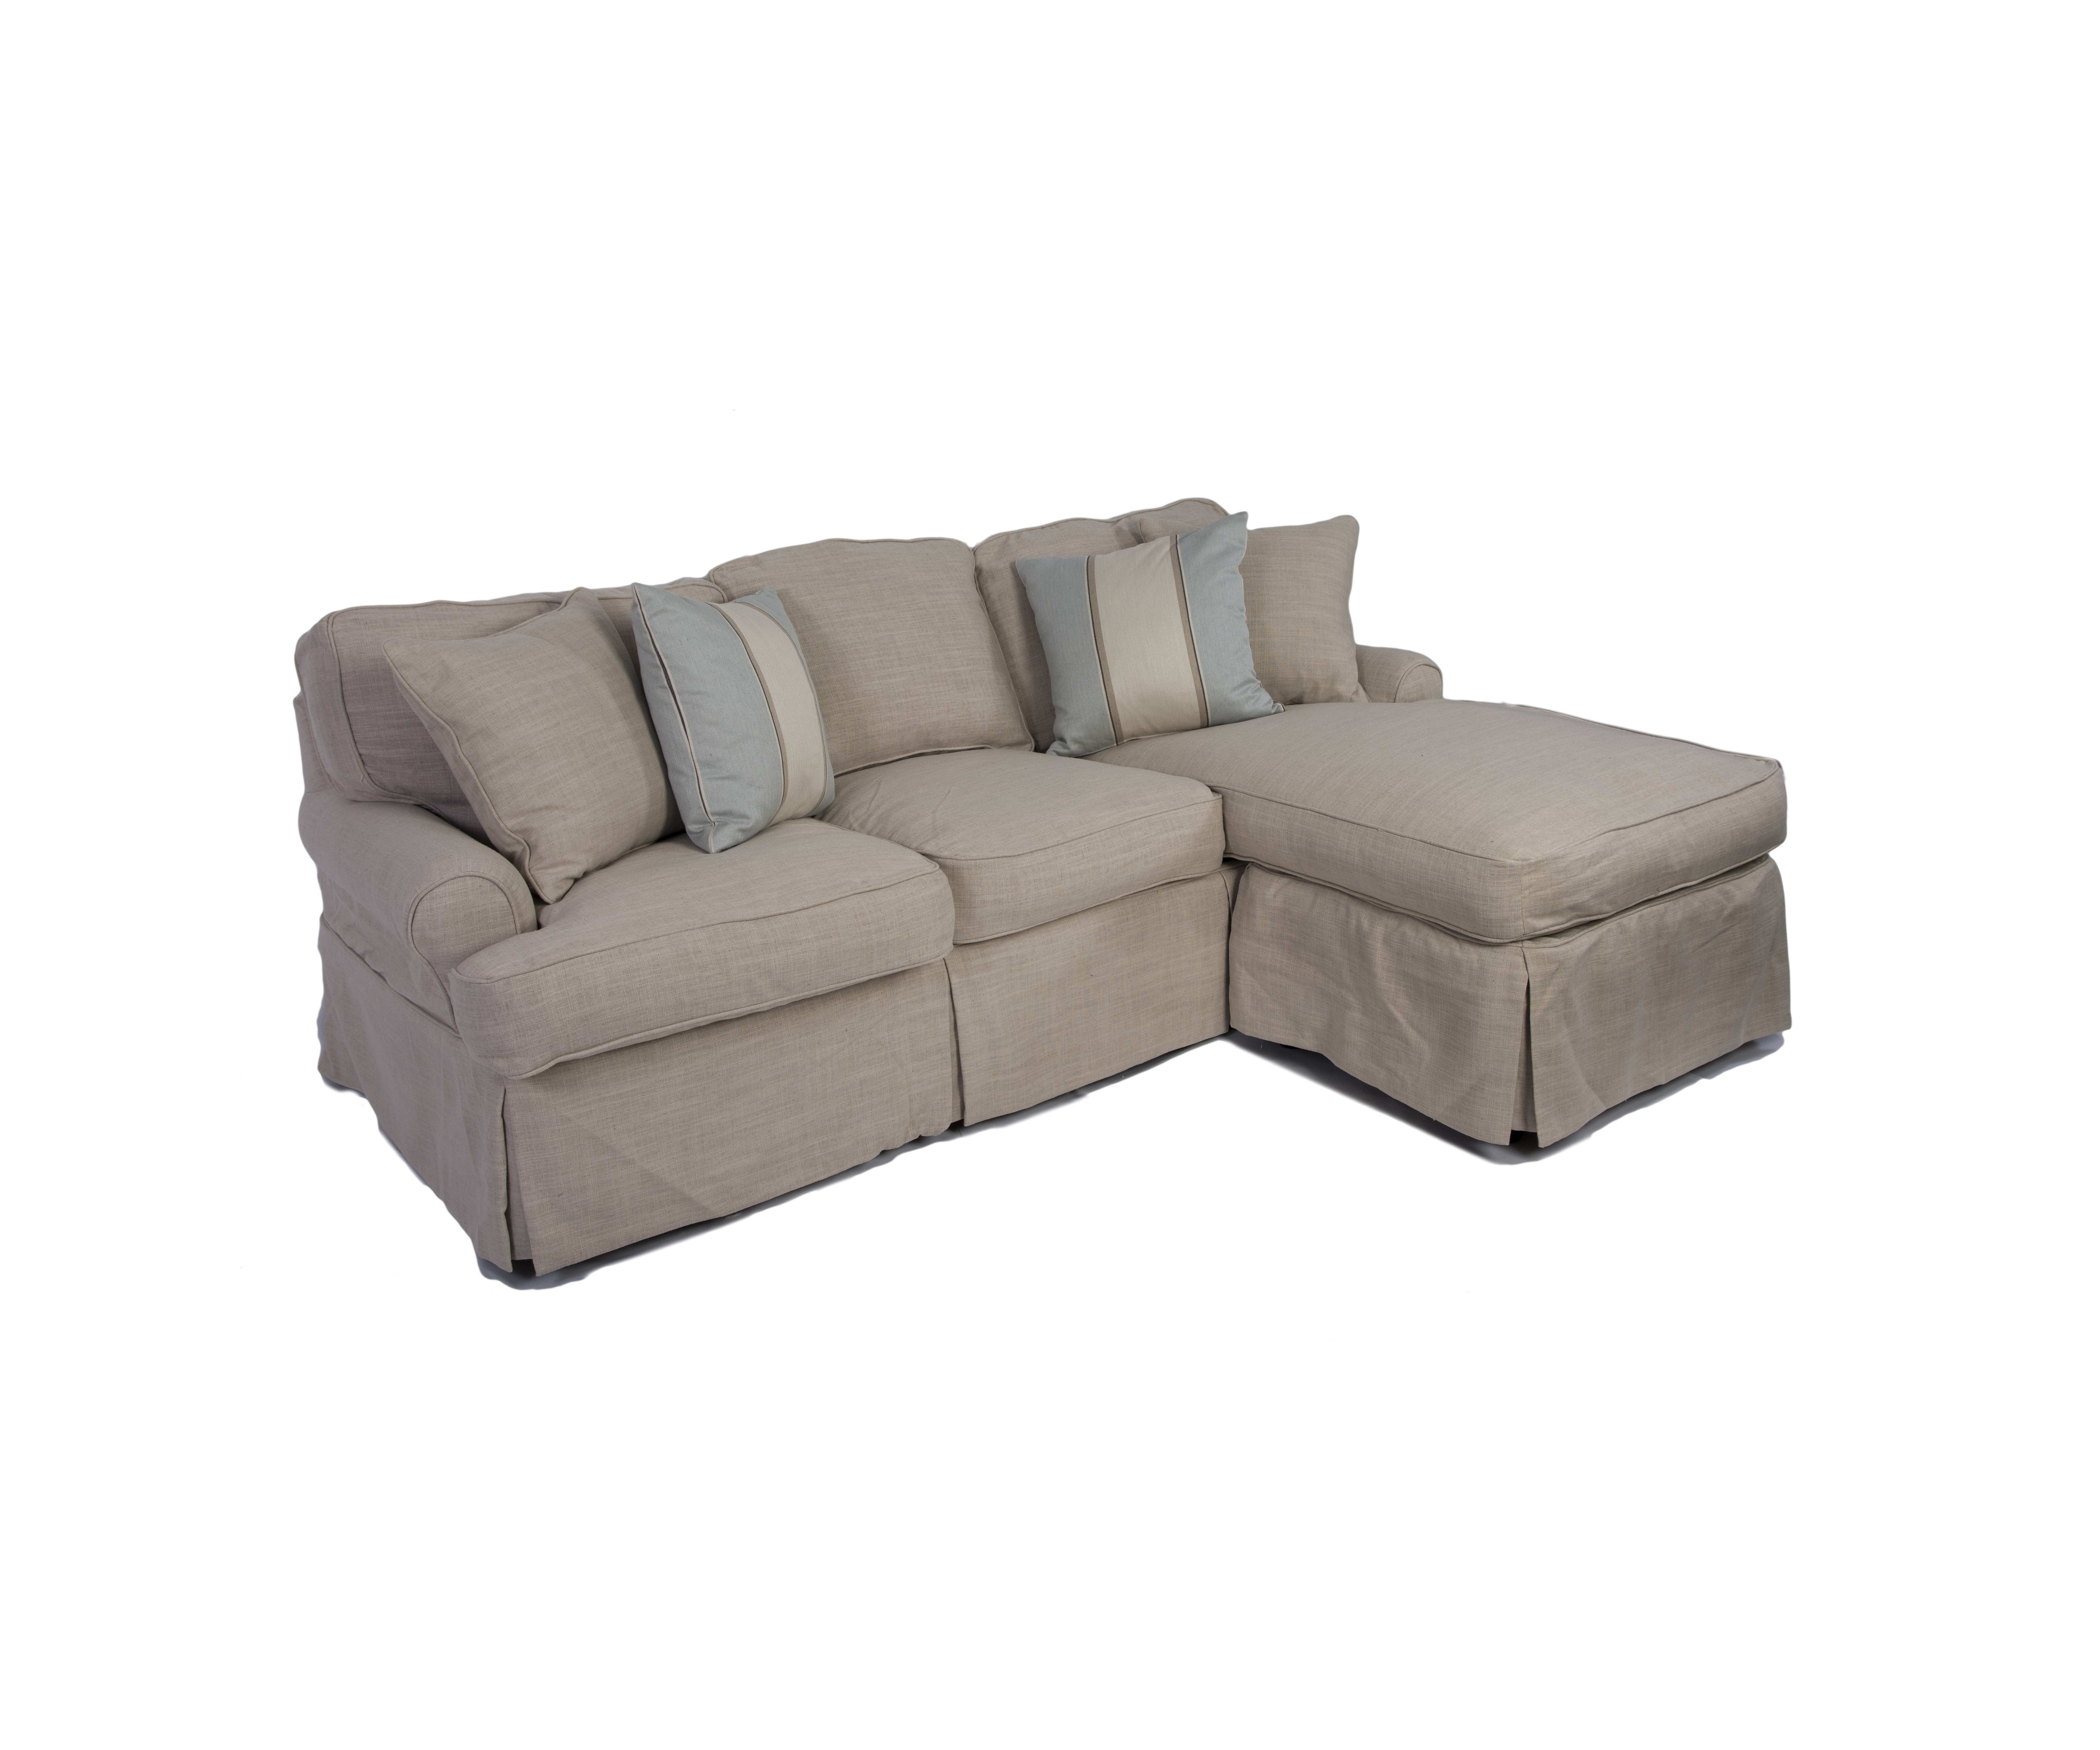 Most Popular Awesome Slipcover Sleeper Sofa Fantastic Home Design Ideas With With Sleeper Chaise Sofas (View 13 of 15)